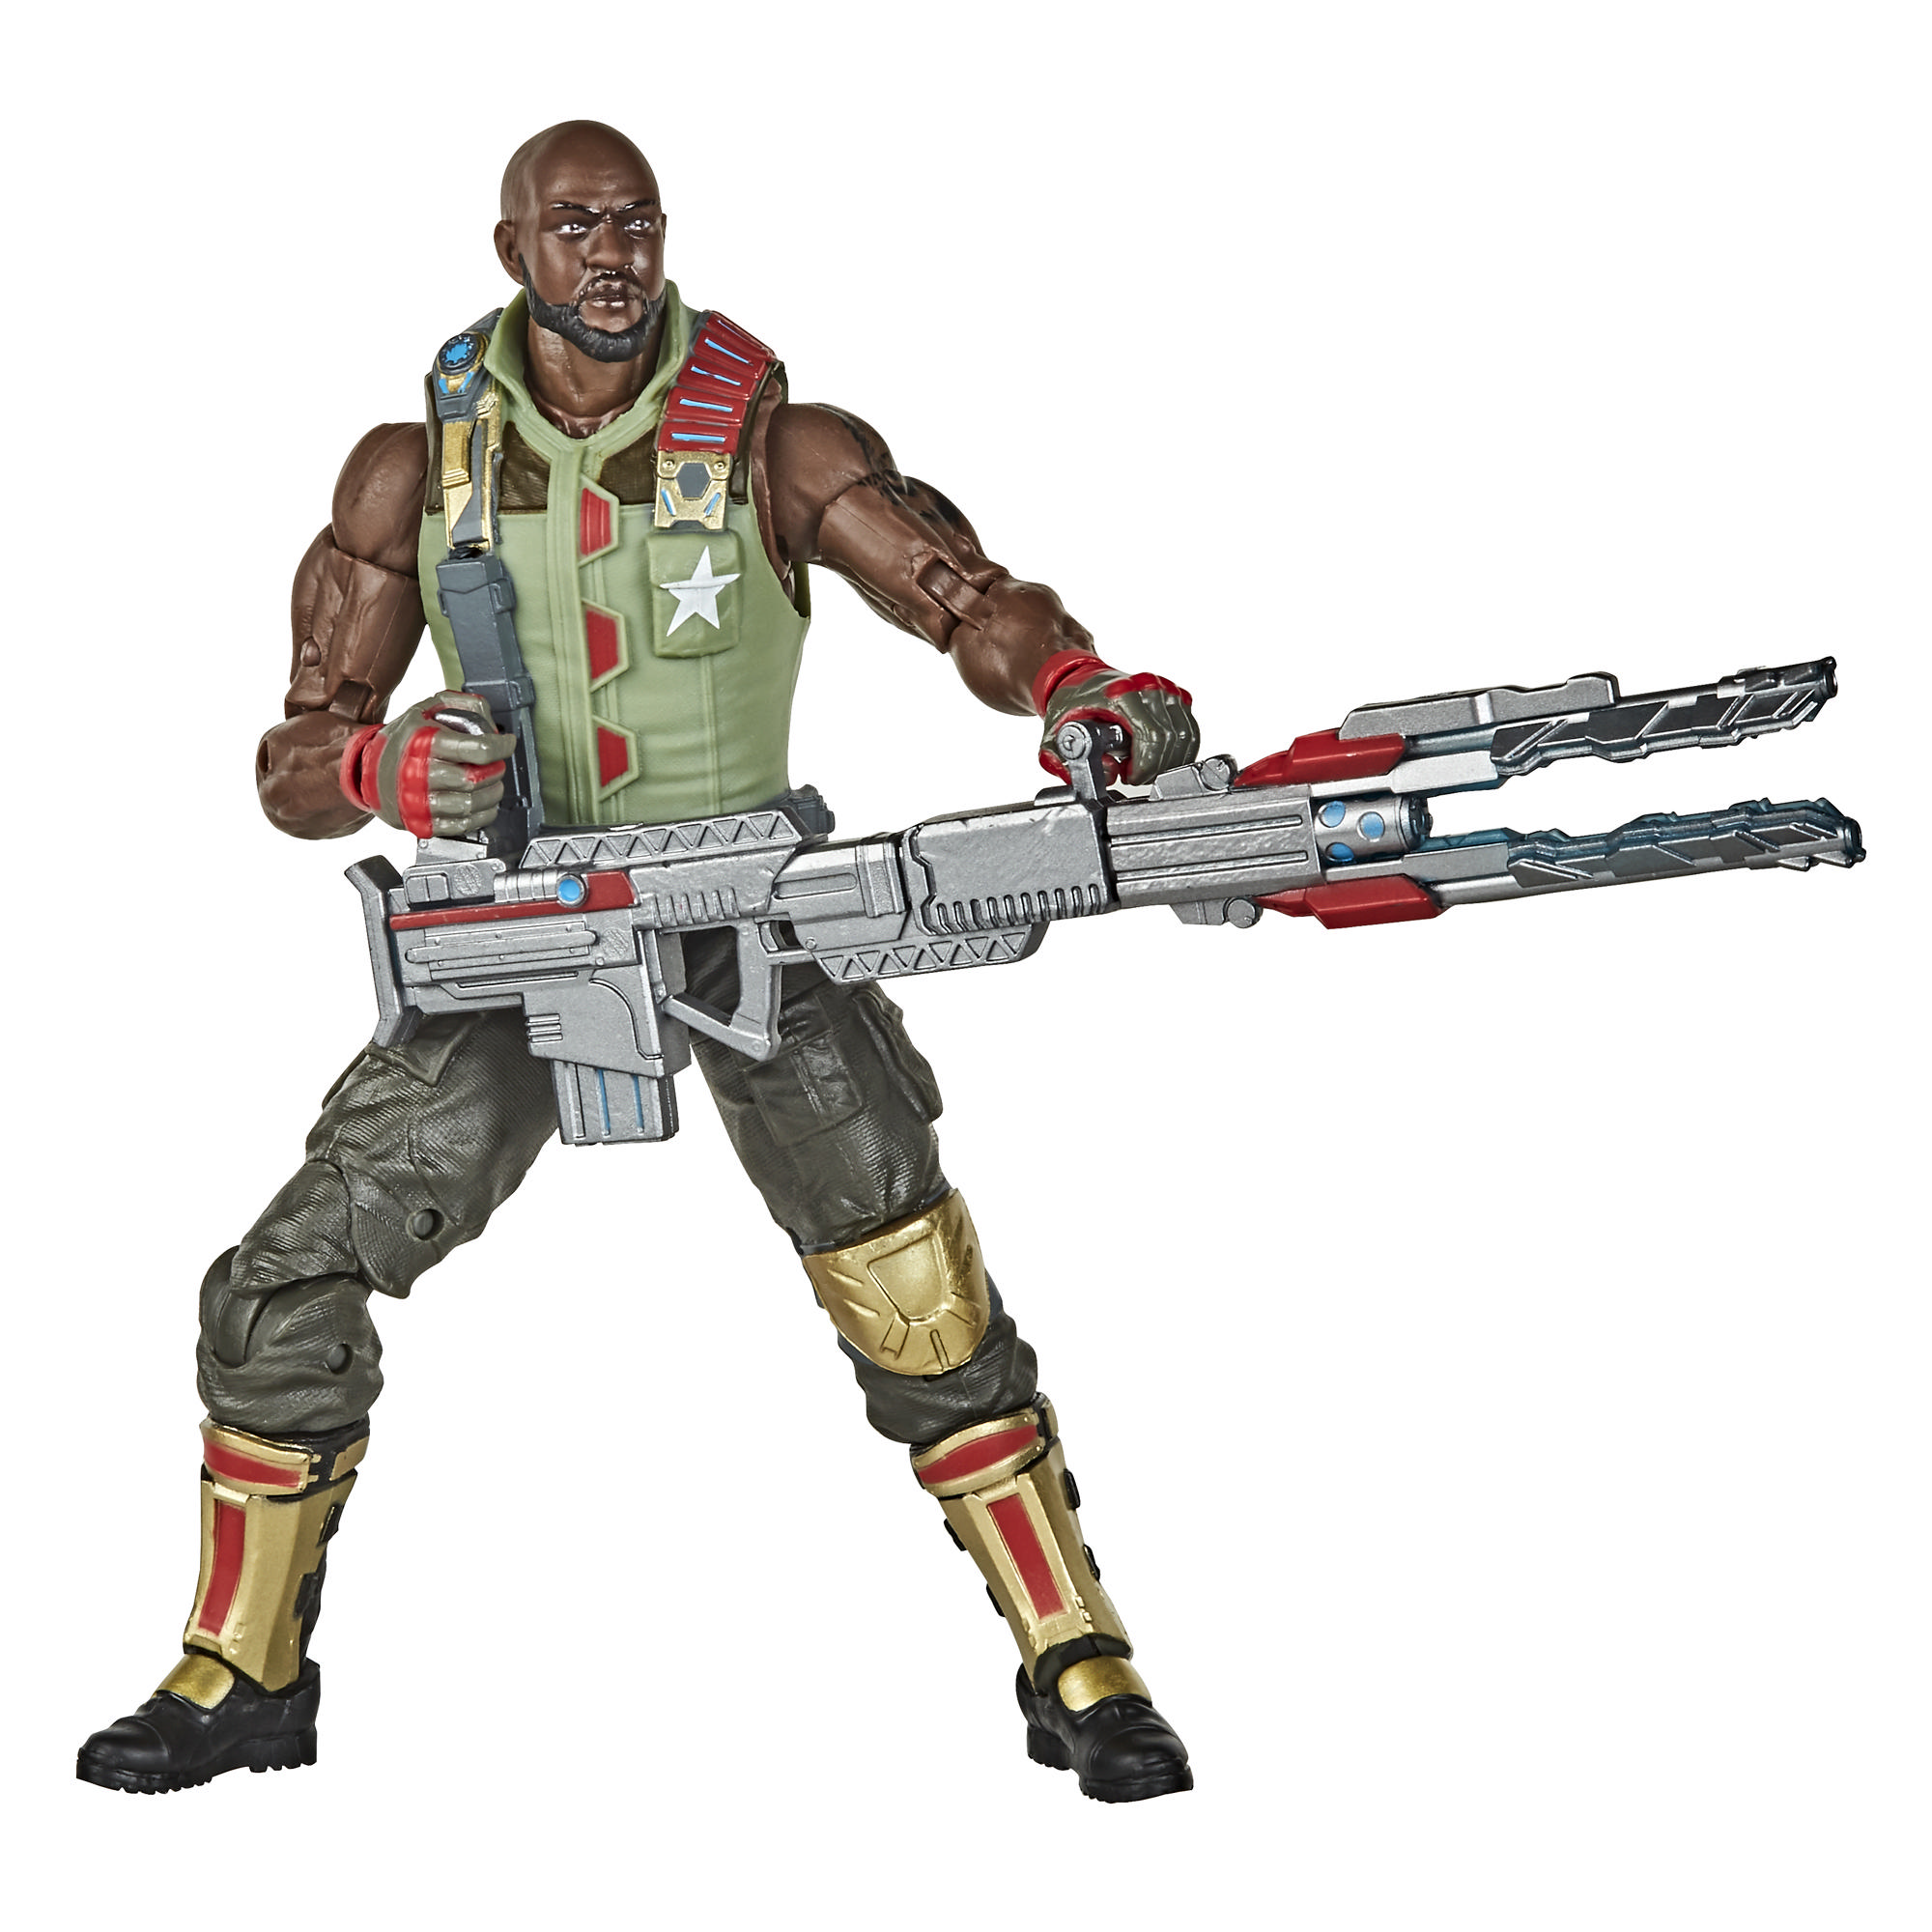 G.I. Joe Classified Series - Figura Roadblock 01 con múltiples accesorios